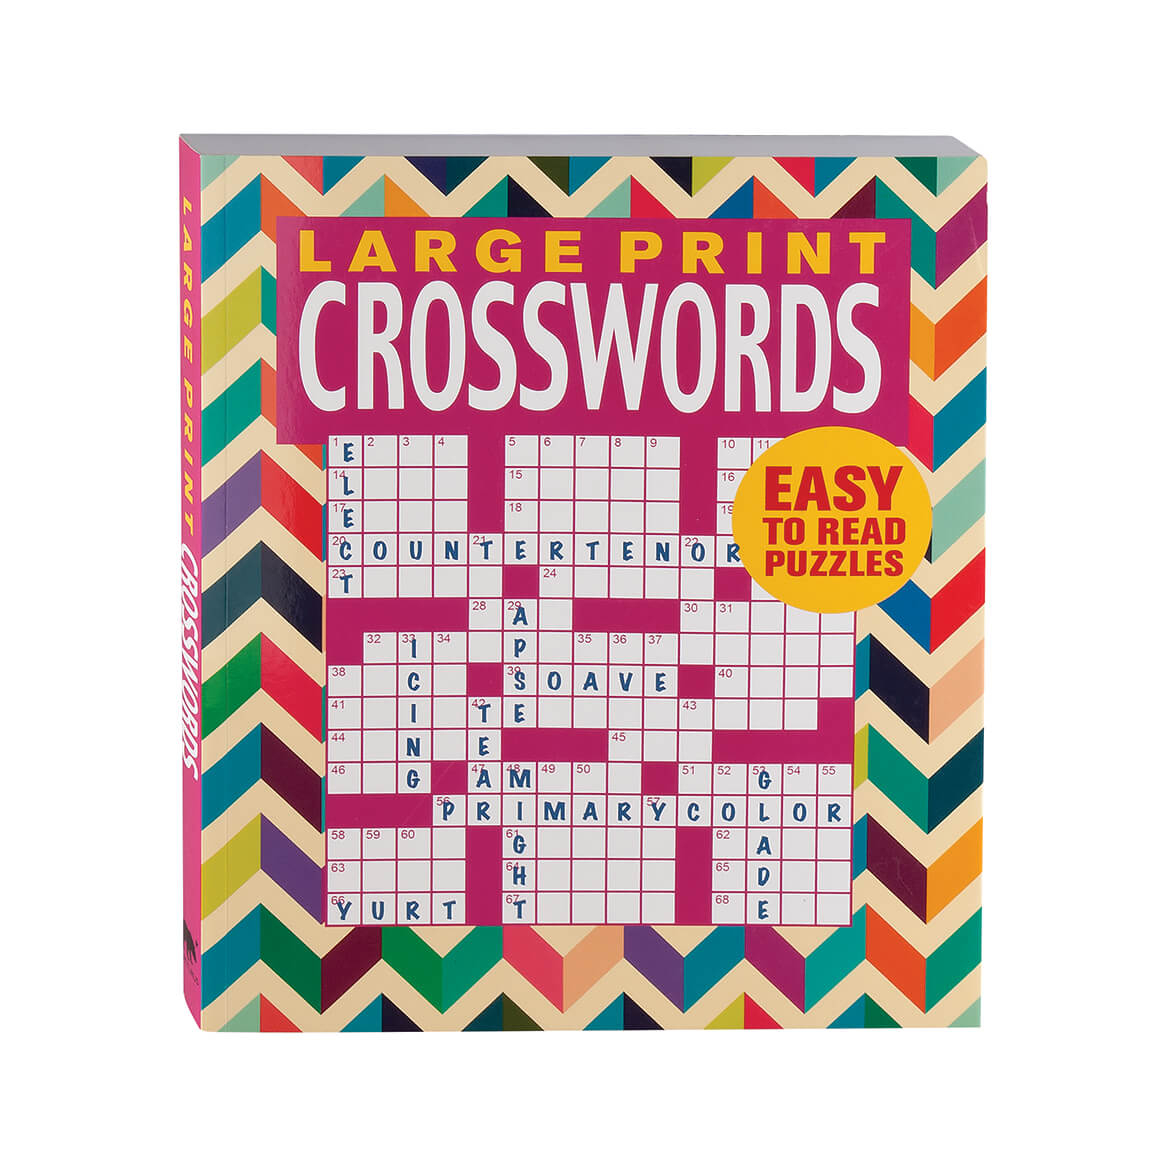 Large Print Crosswords Book - Puzzle Book - Miles Kimball - Large Print Crossword Puzzle Books